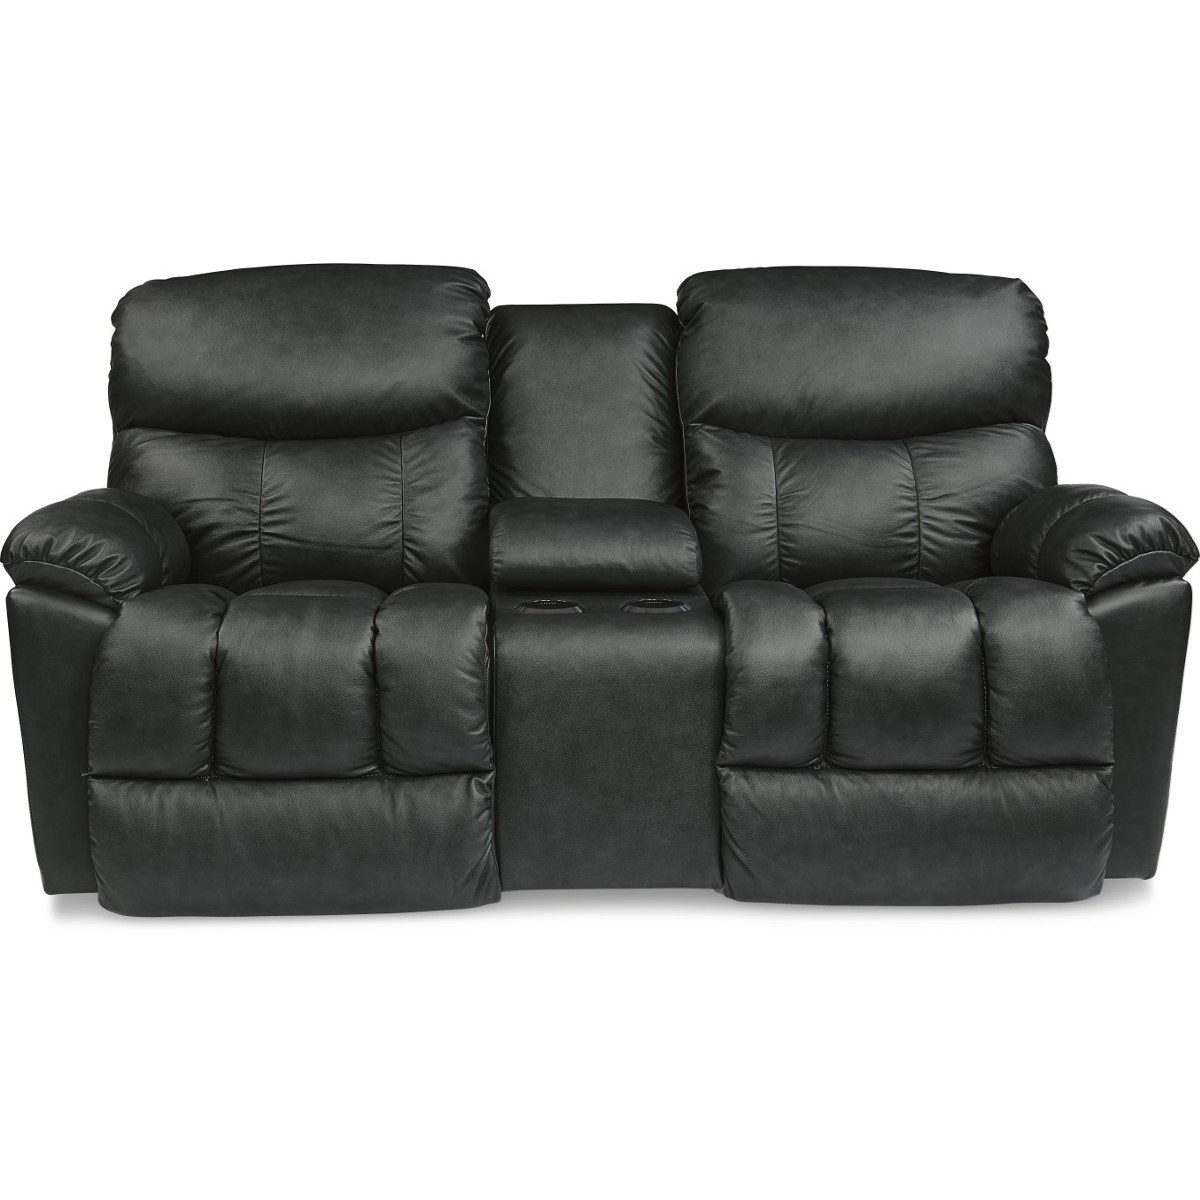 Power Reclining Loveseat w/ Console